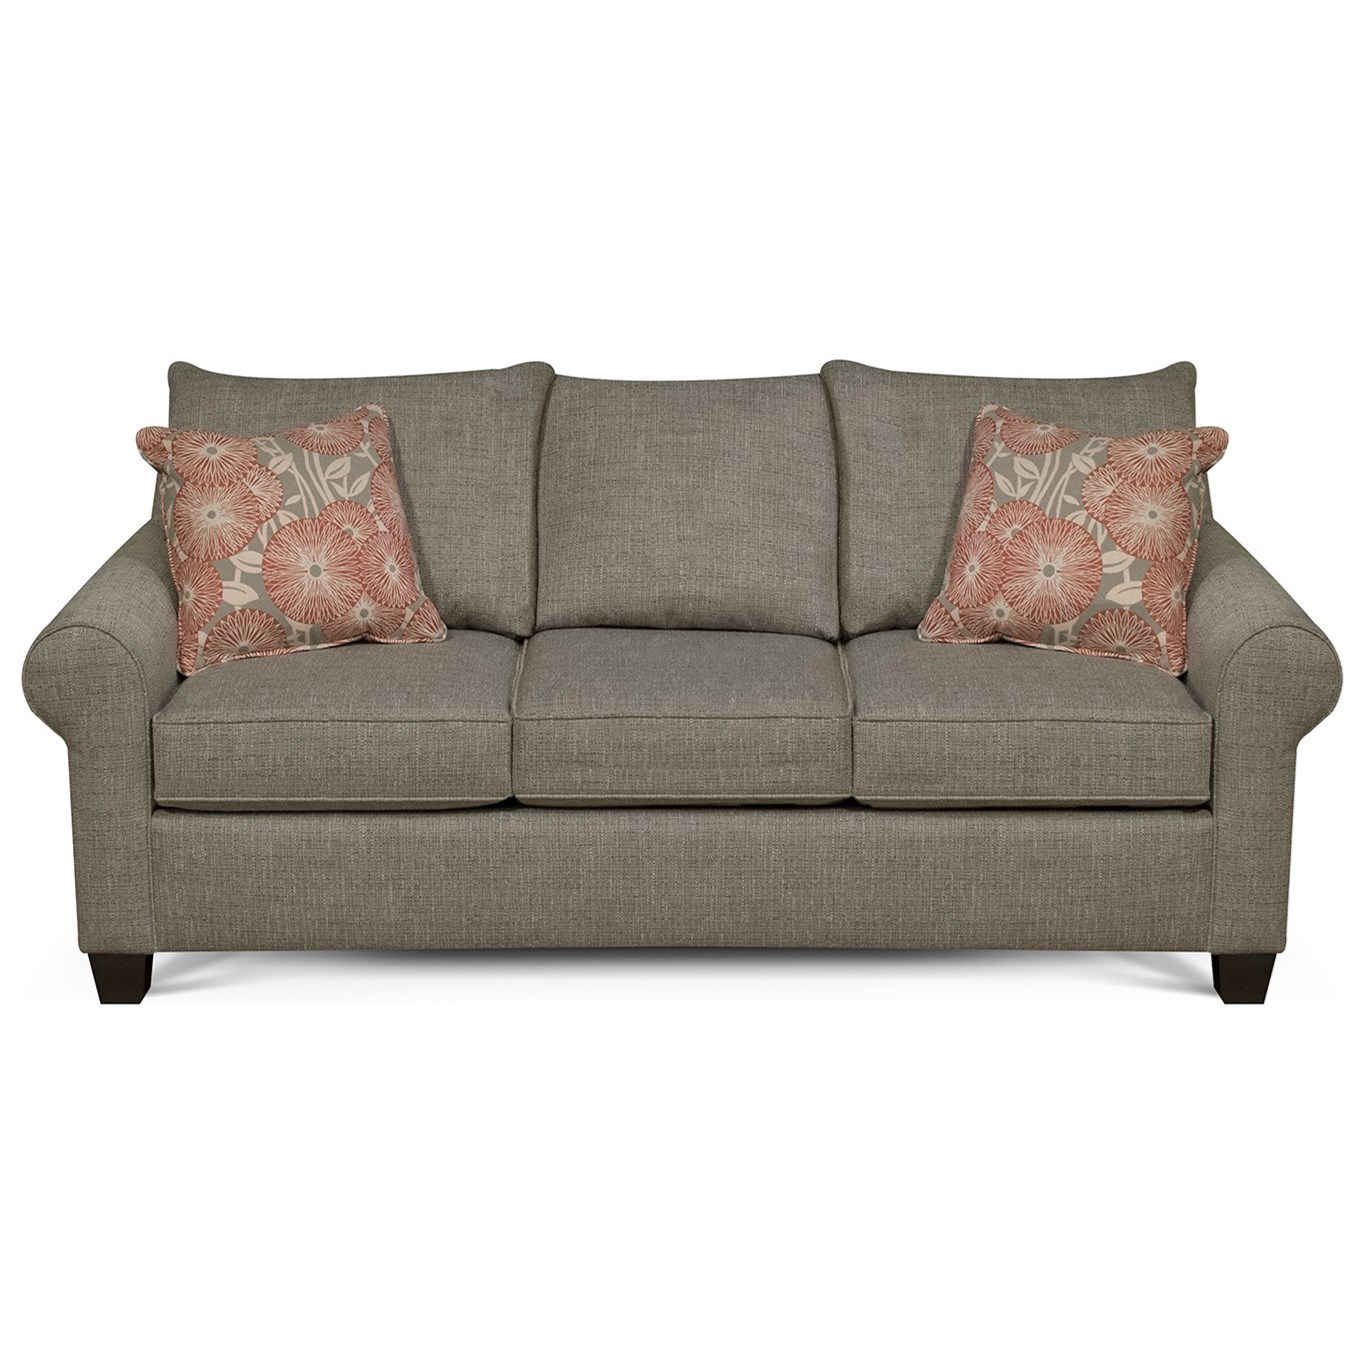 England Clementine Casual Sofa With Rolled Arms Jordan S